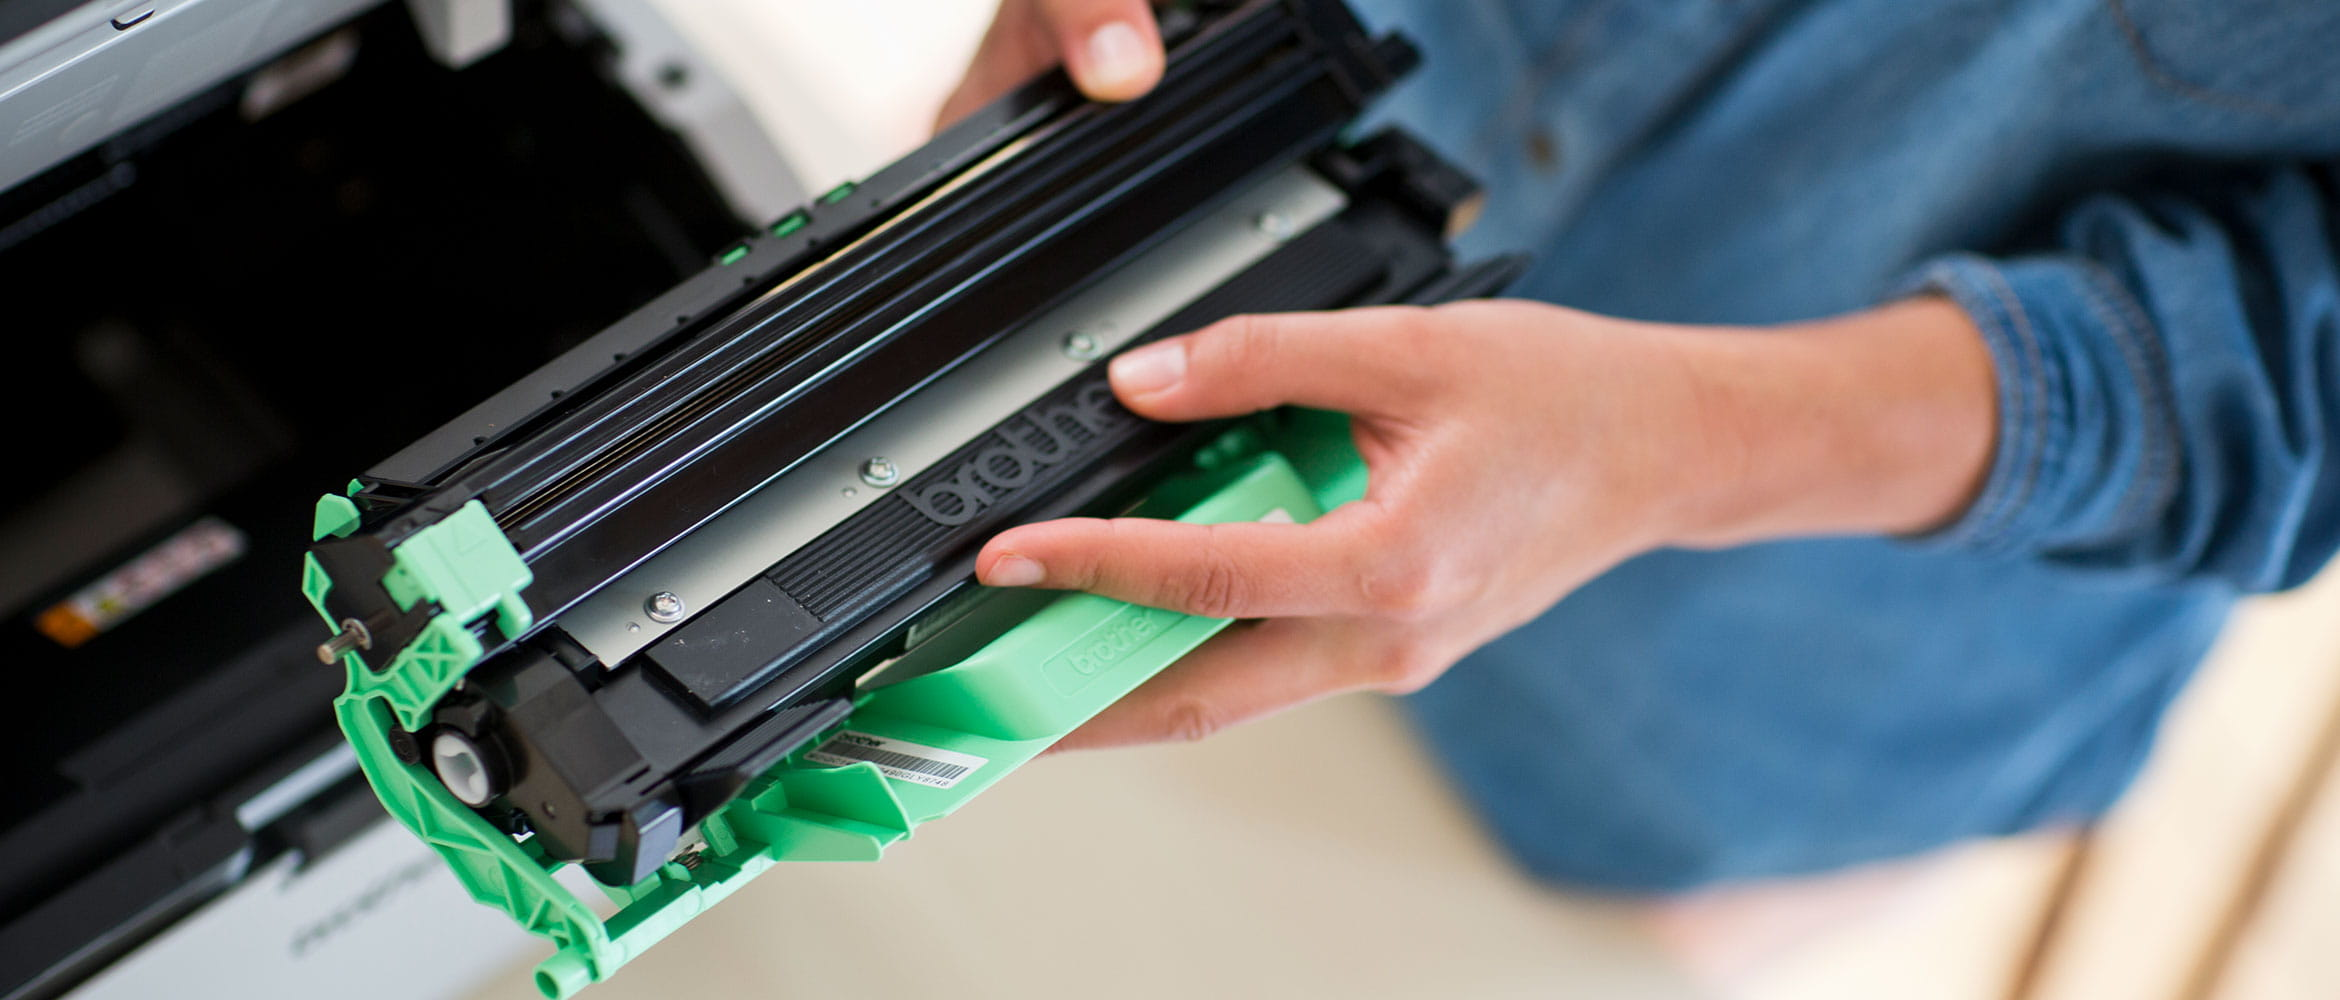 A man holding a Brother toner cartridge